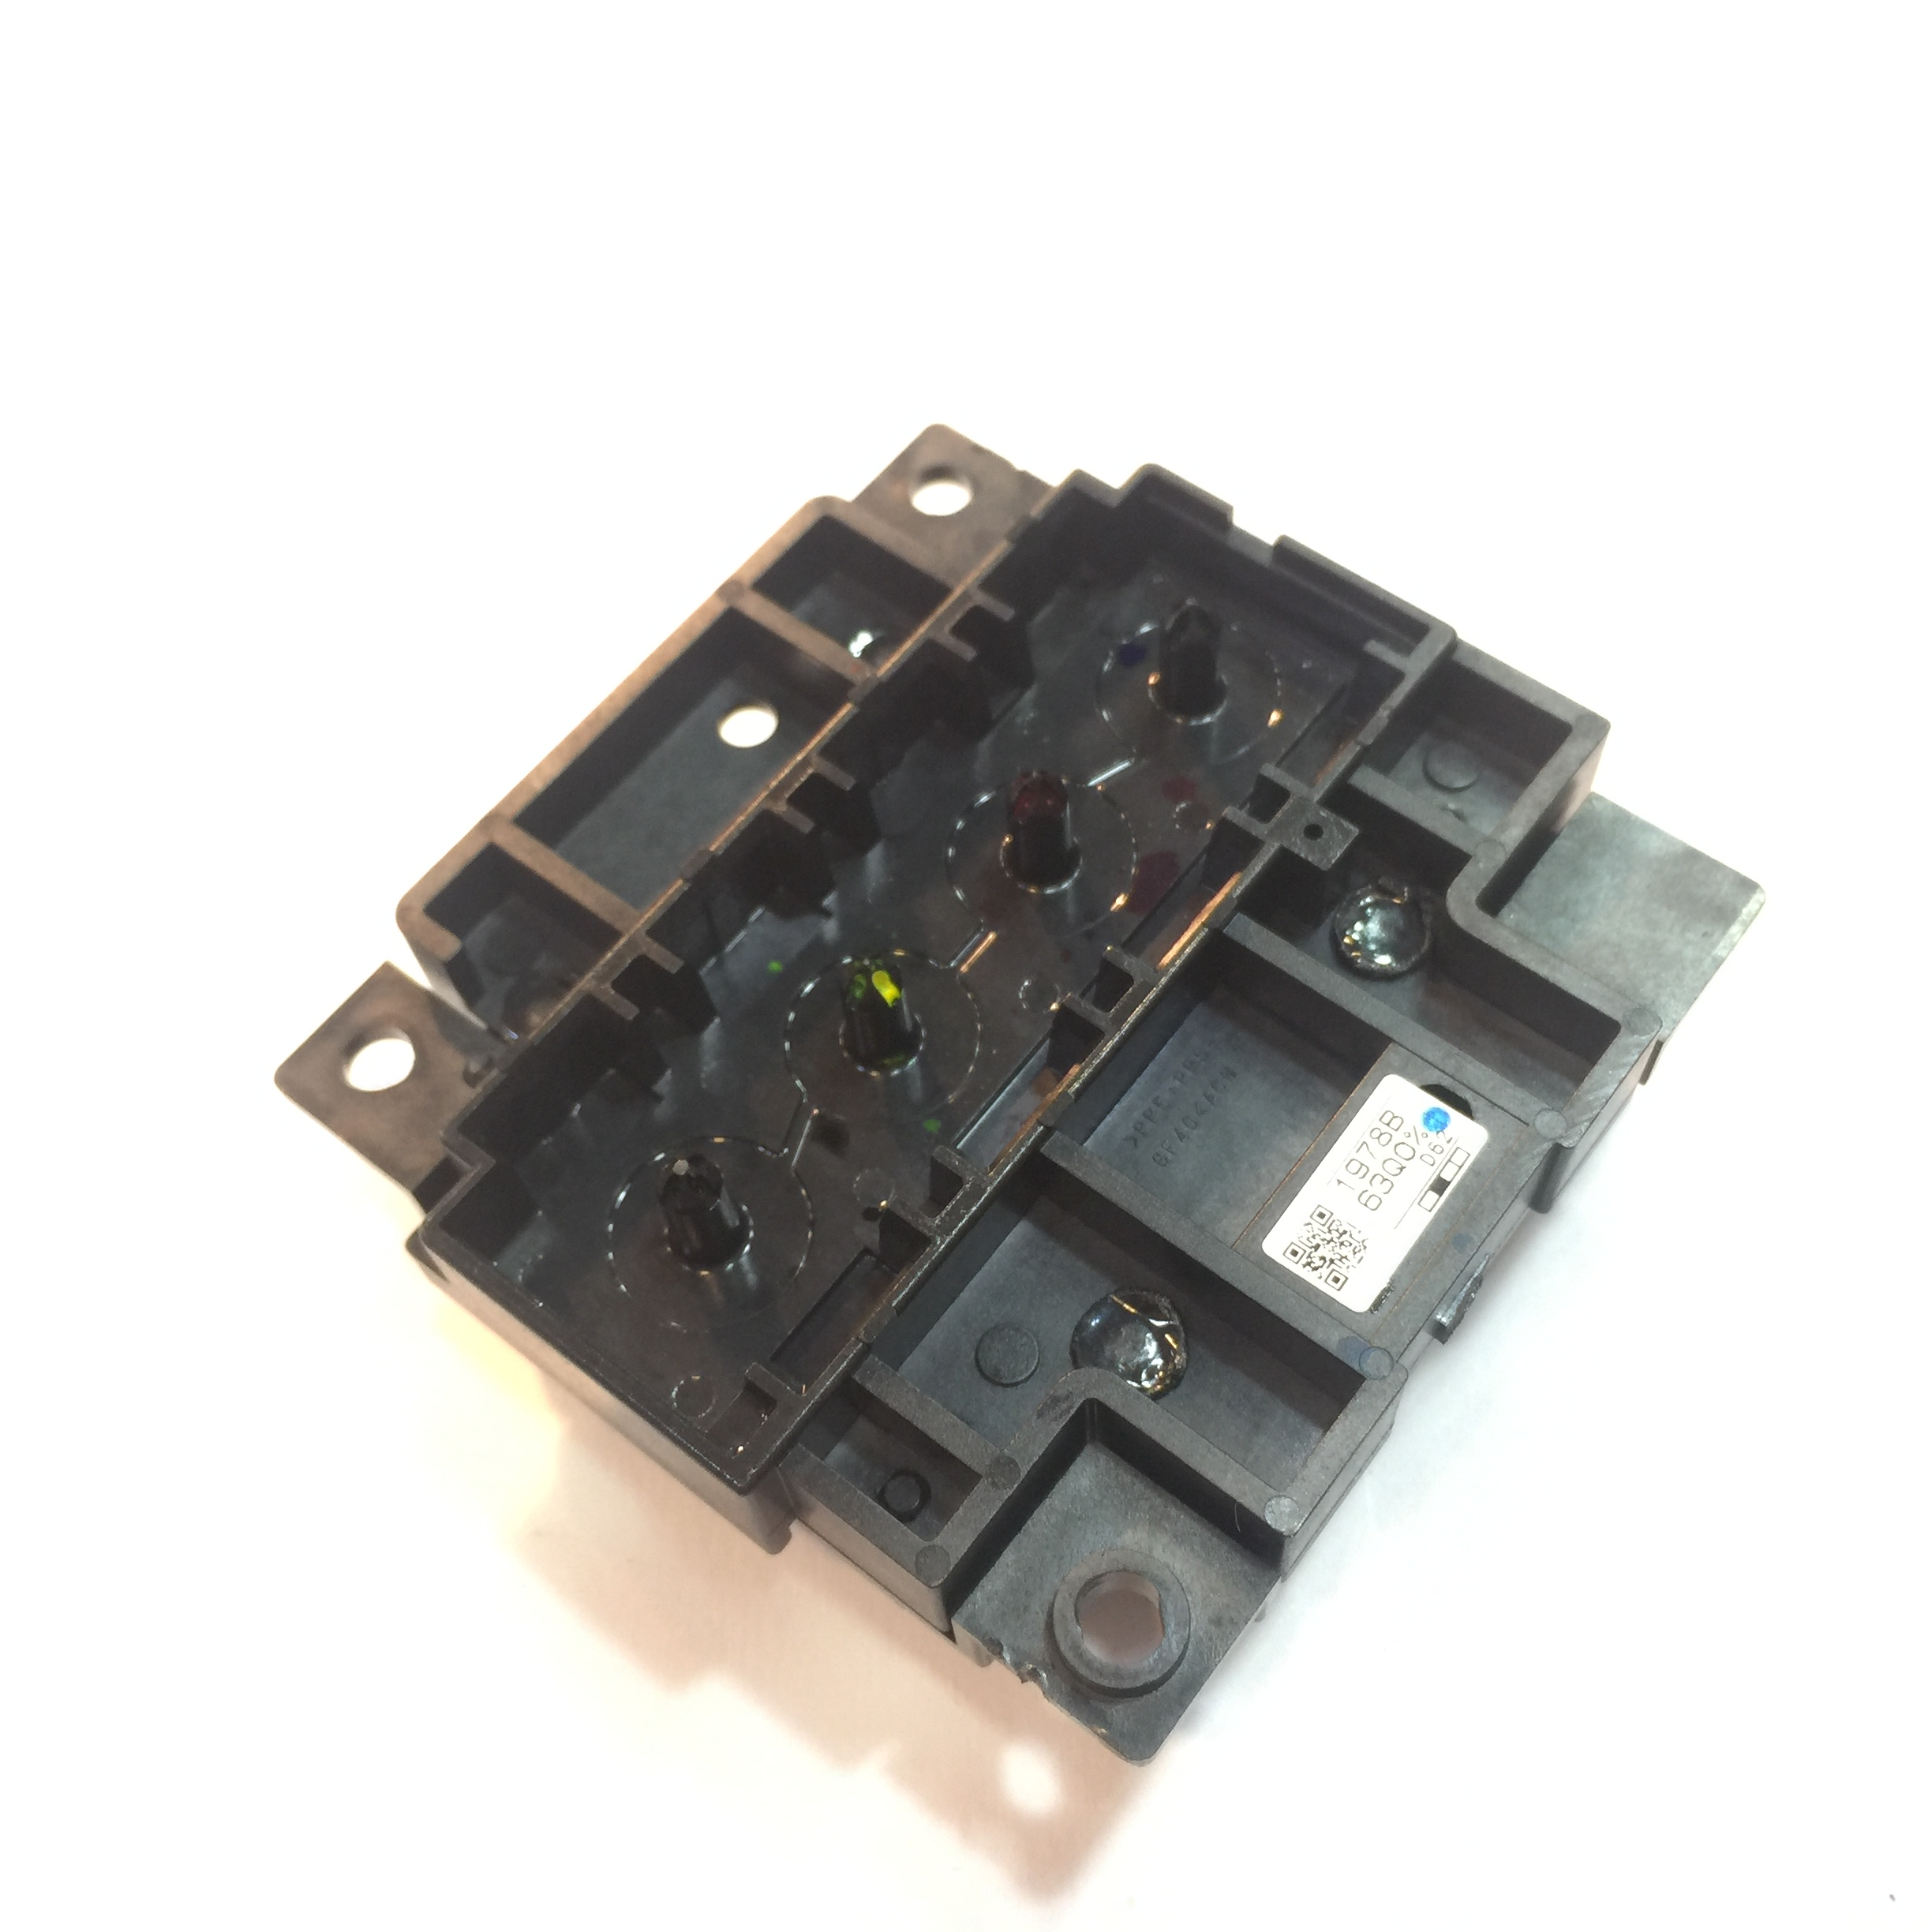 Original Print Head For Epson L300 L301 L350 L351 L353 L355 L358 L381 L551 L558 L111 L120 L210 L211 ME401 XP302 Printhead<br>